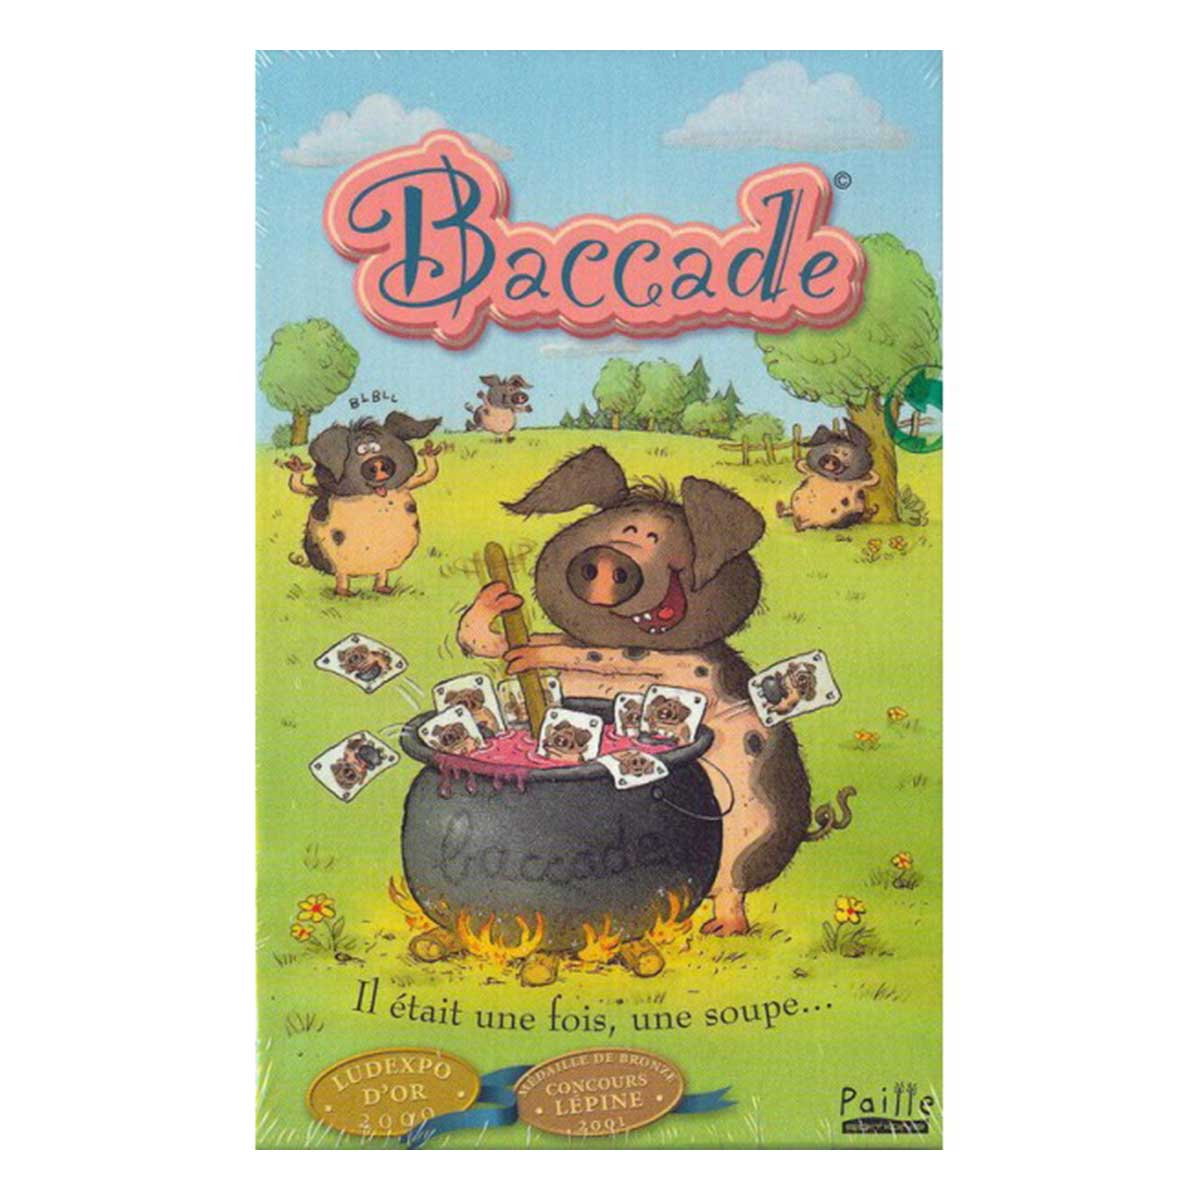 Baccade - Paille Editions